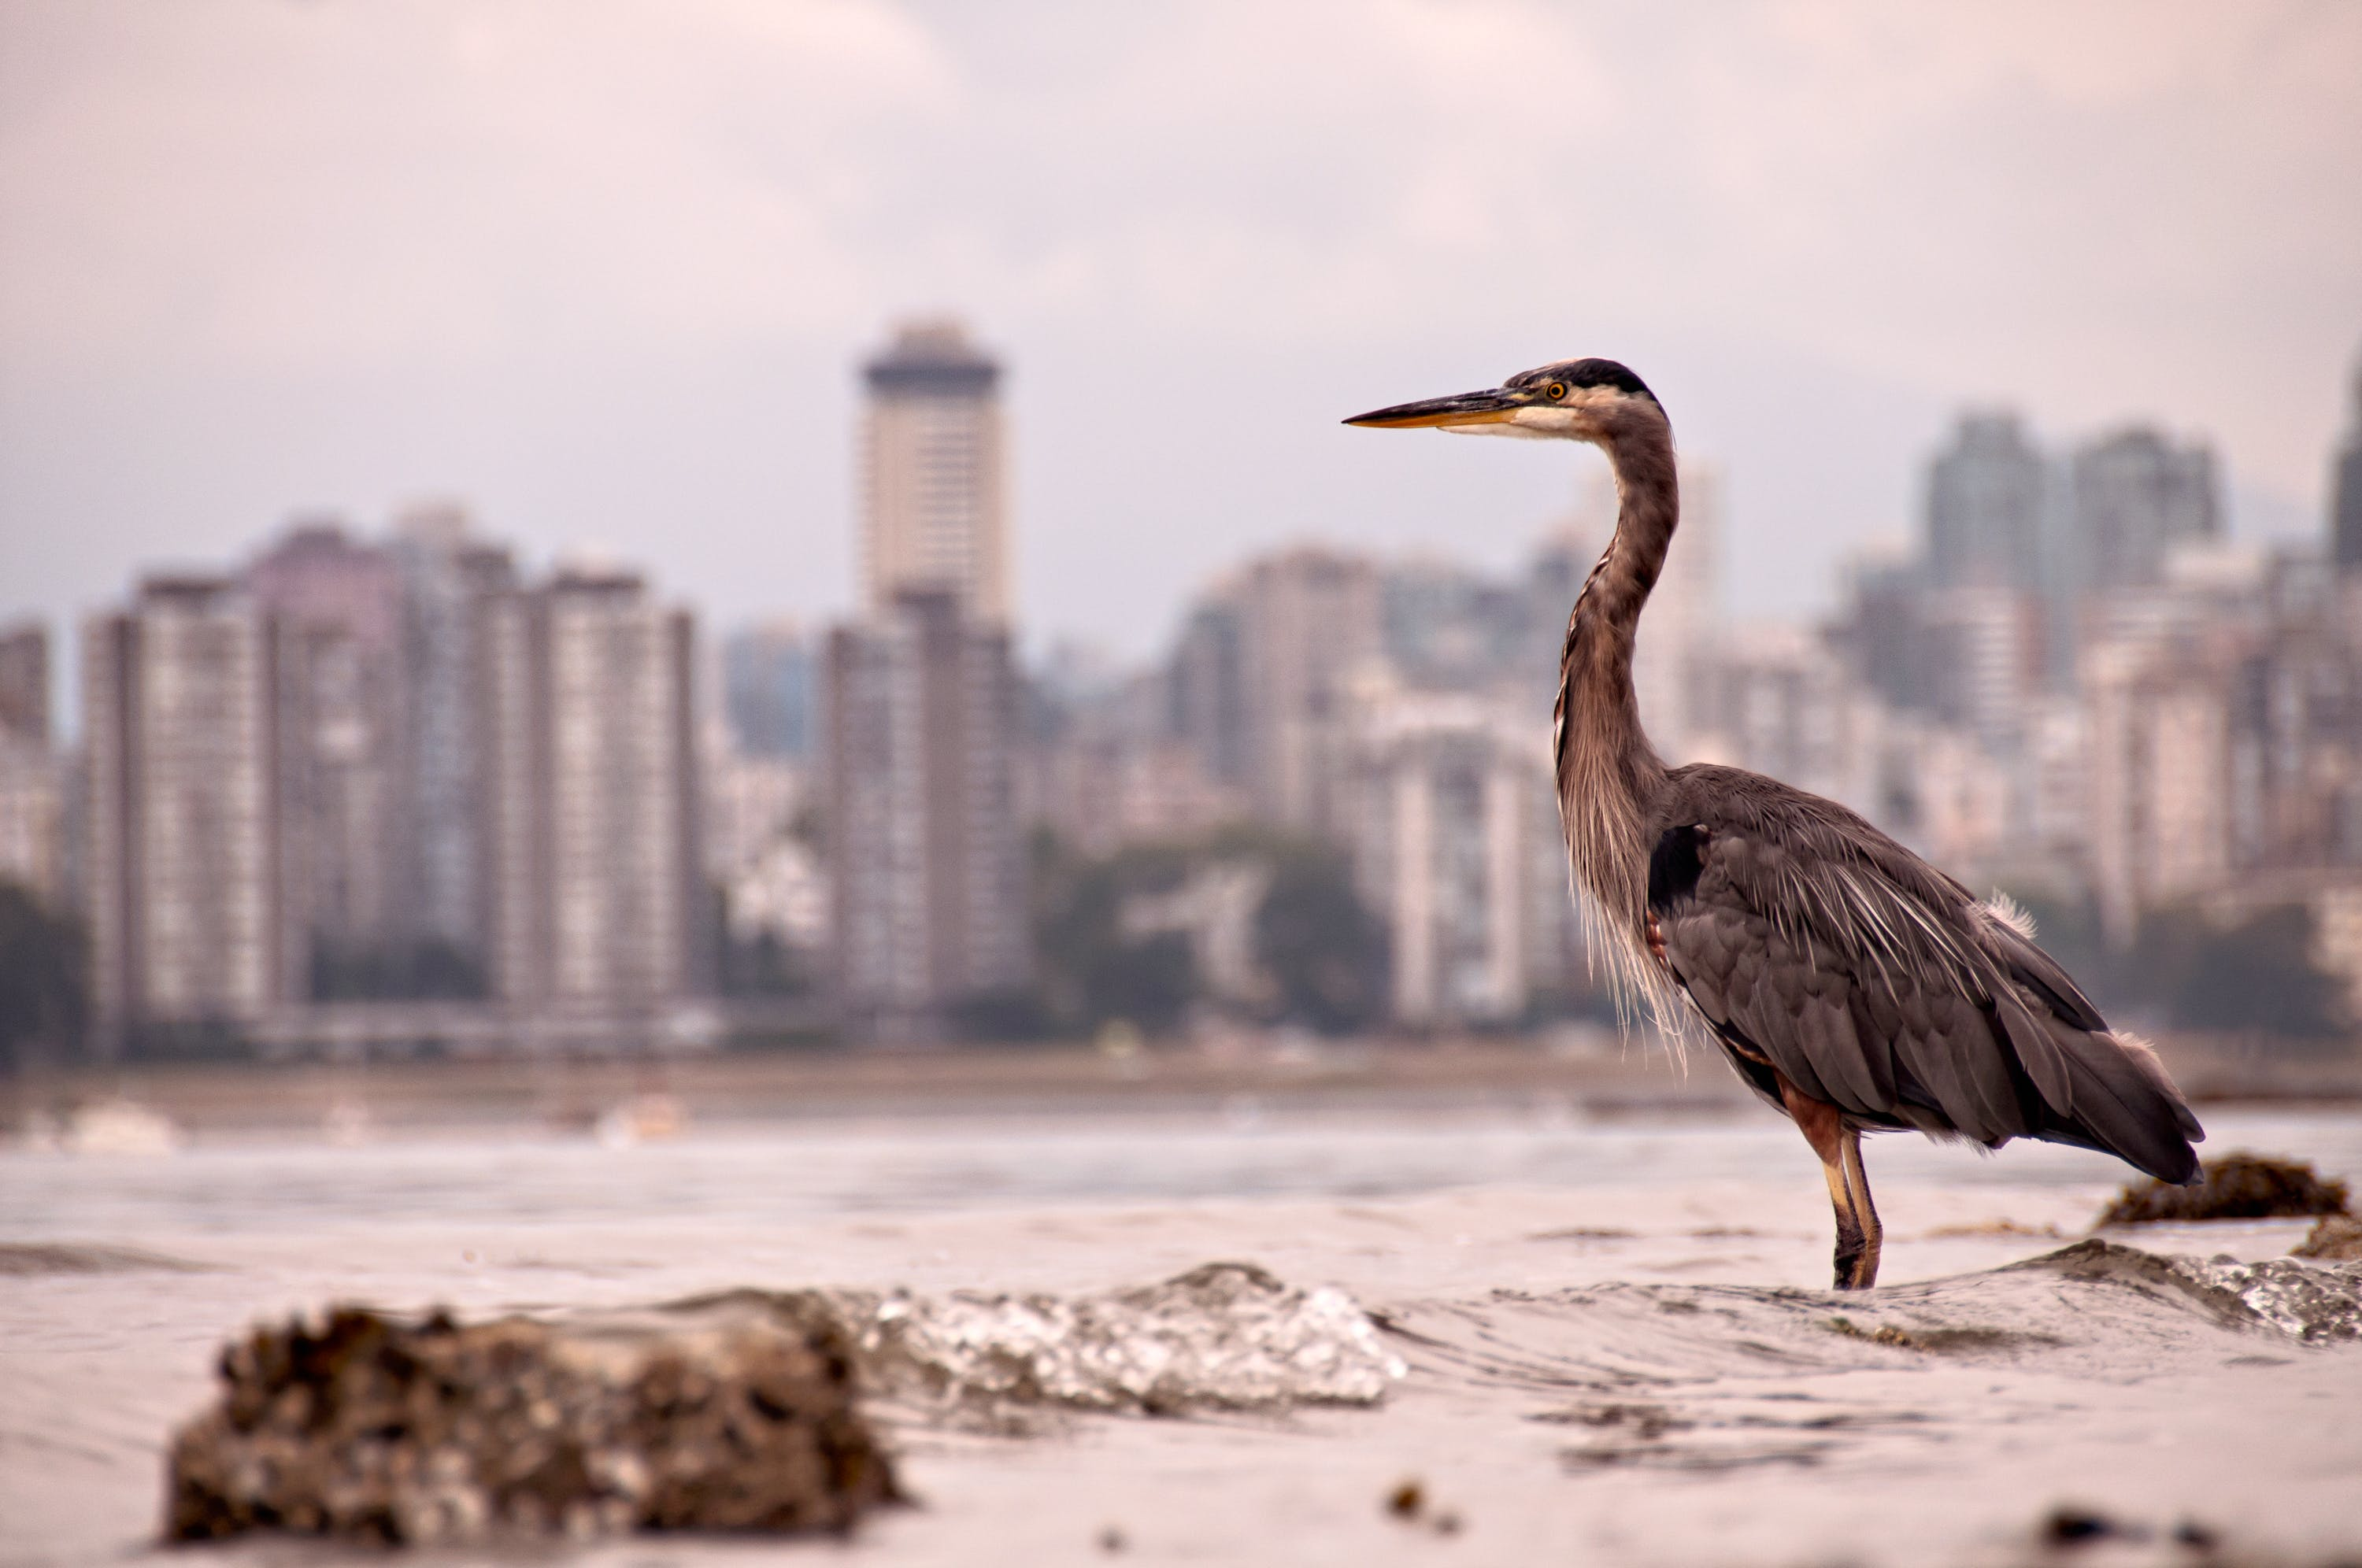 Photo of Gray and Brown Bird with Cityscape in the Background